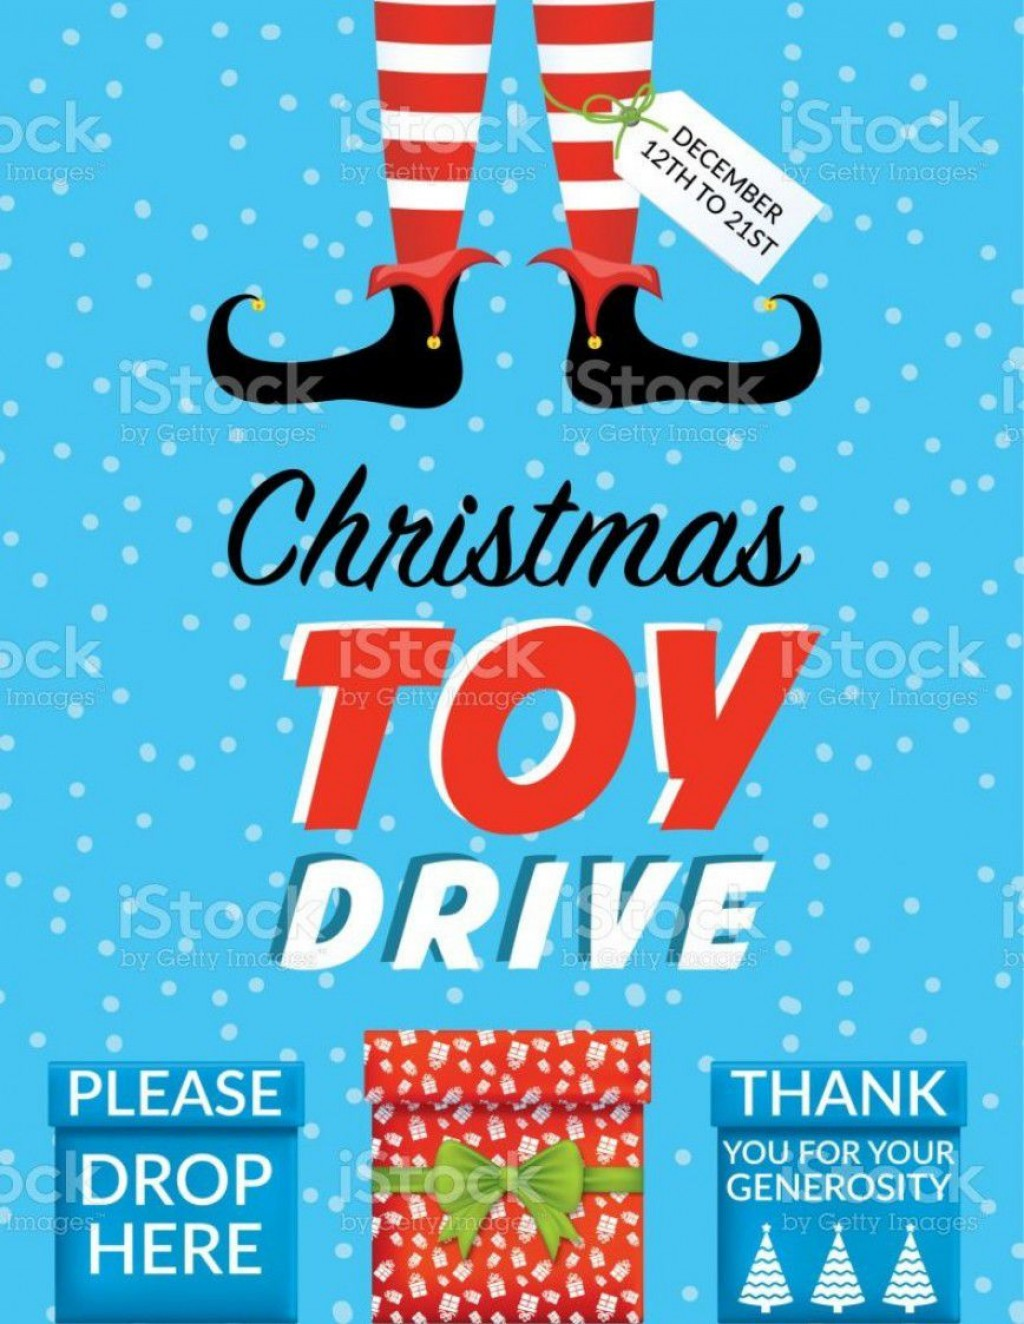 001 Stunning Toy Drive Flyer Template Photo  Holiday Download Free WordLarge